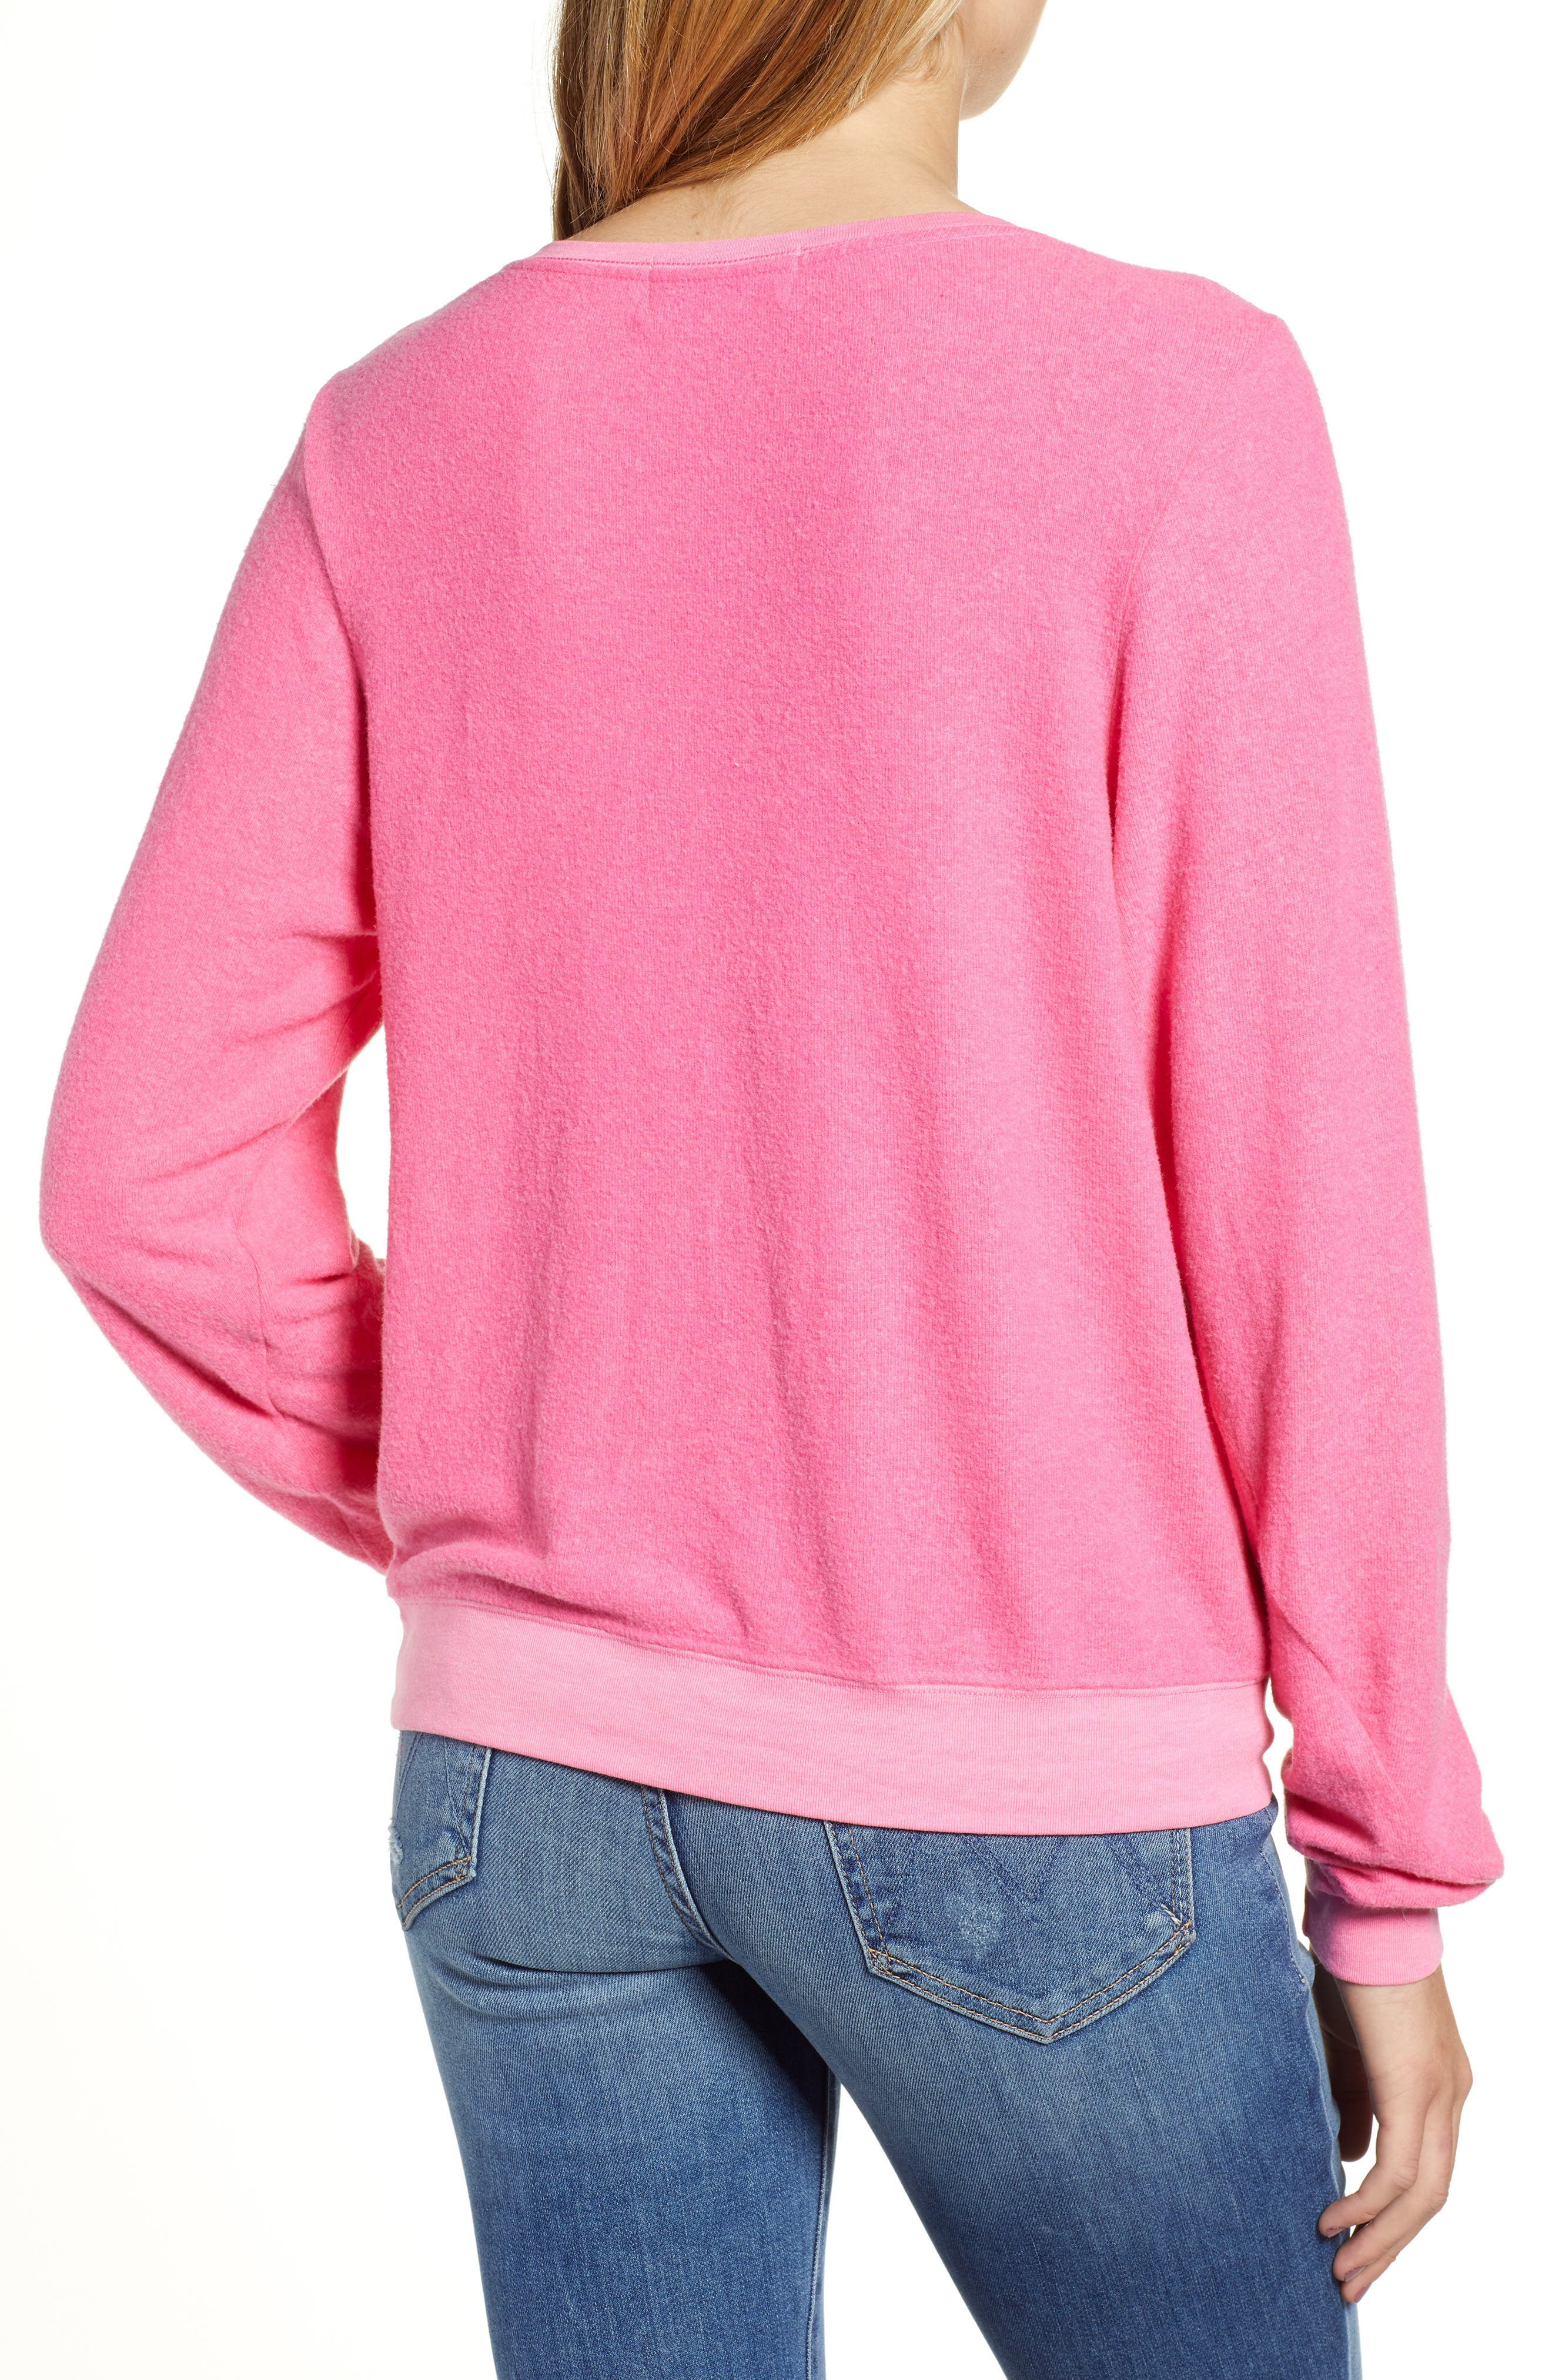 Baggy Beach Jumper - Champagne Superhero Pullover,                             Alternate thumbnail 2, color,                             NEON MAGENTA